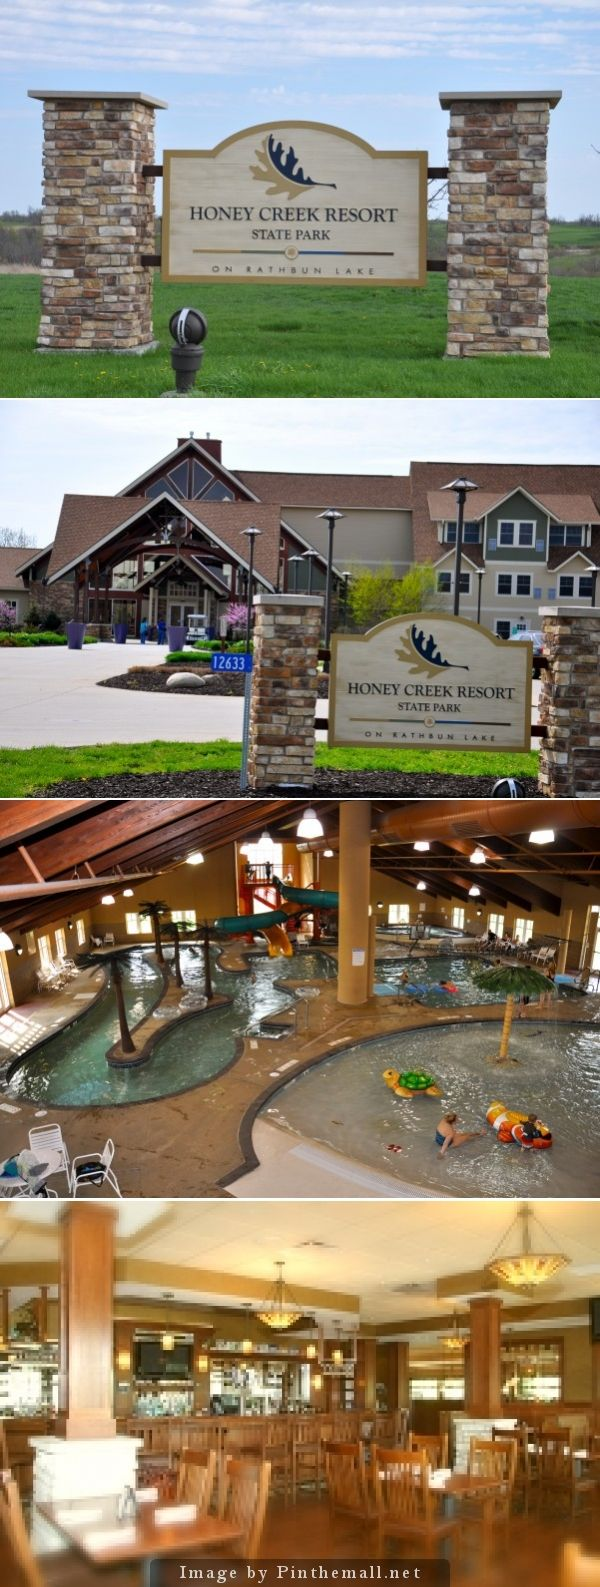 Honey Creek Resort - Check out this great resort in the heartland of America